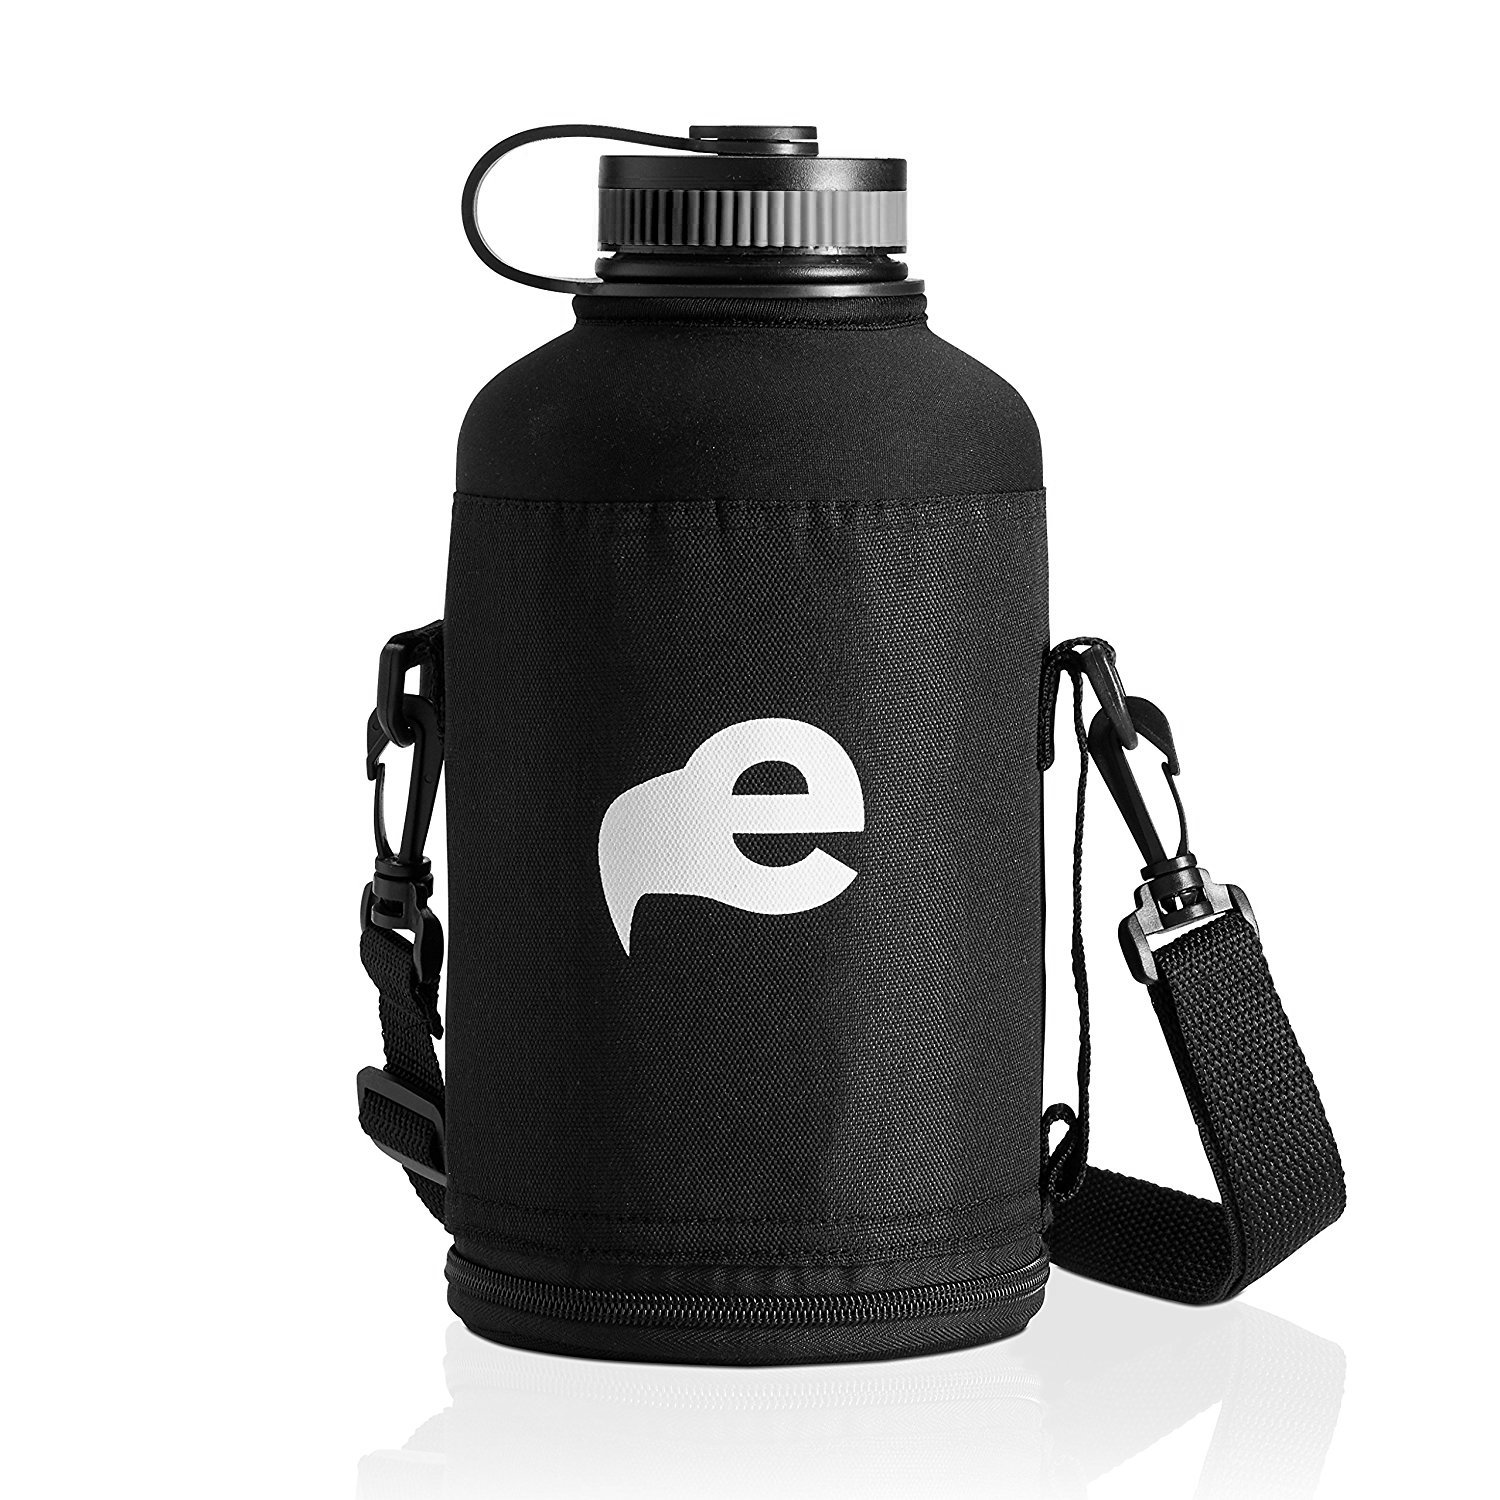 Stainless Steel Insulated Beer Growler - 64 oz Water Bottle - Includes Carry Case - Double Wall Vacuum Sealed Wide Mouth Design. Five Year Guarantee! Perfect Temperature Control from eegl by eegl (Image #3)